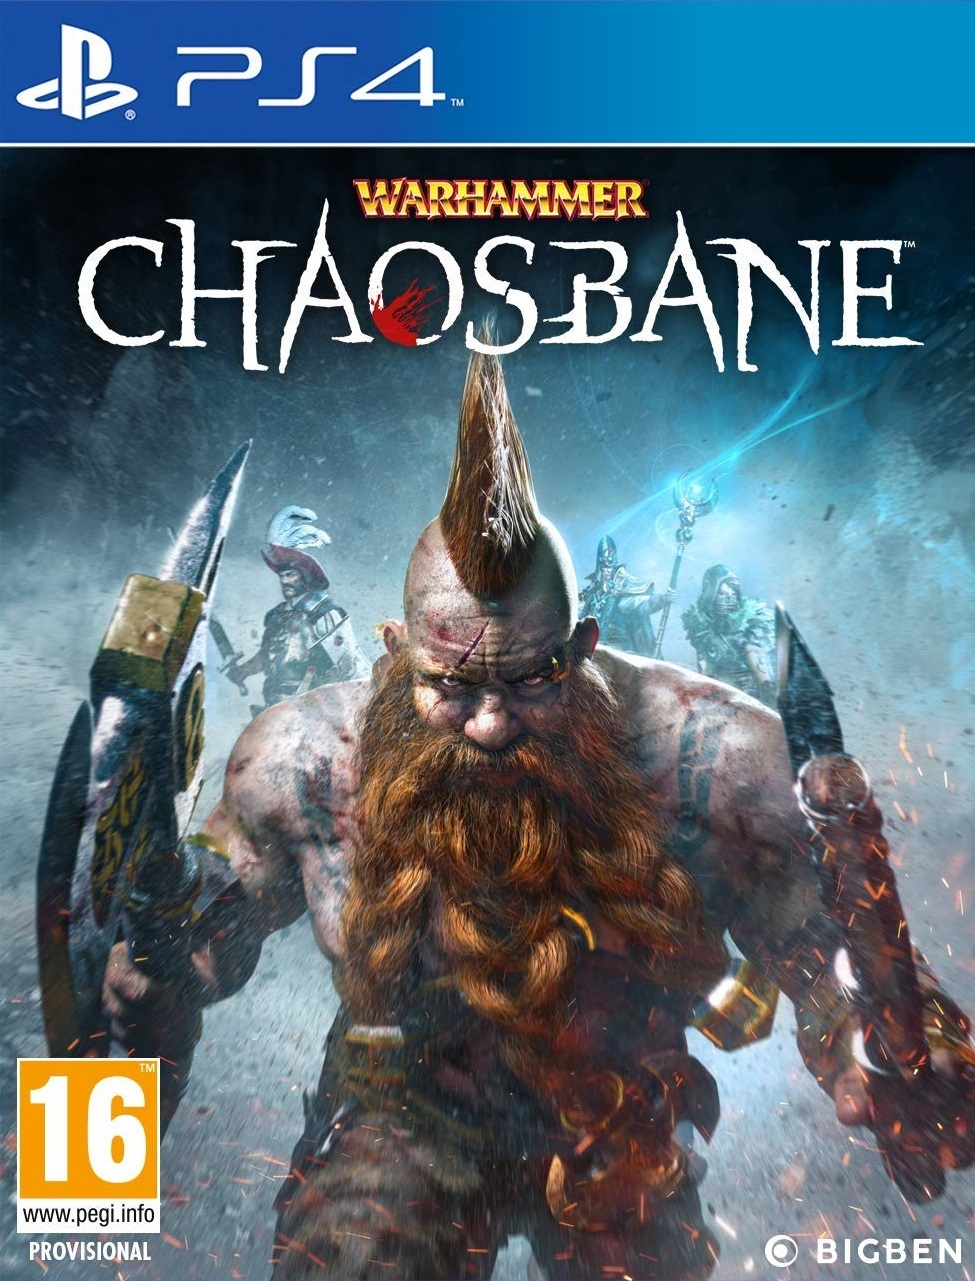 Warhammer: Chaosbane for PS4 image